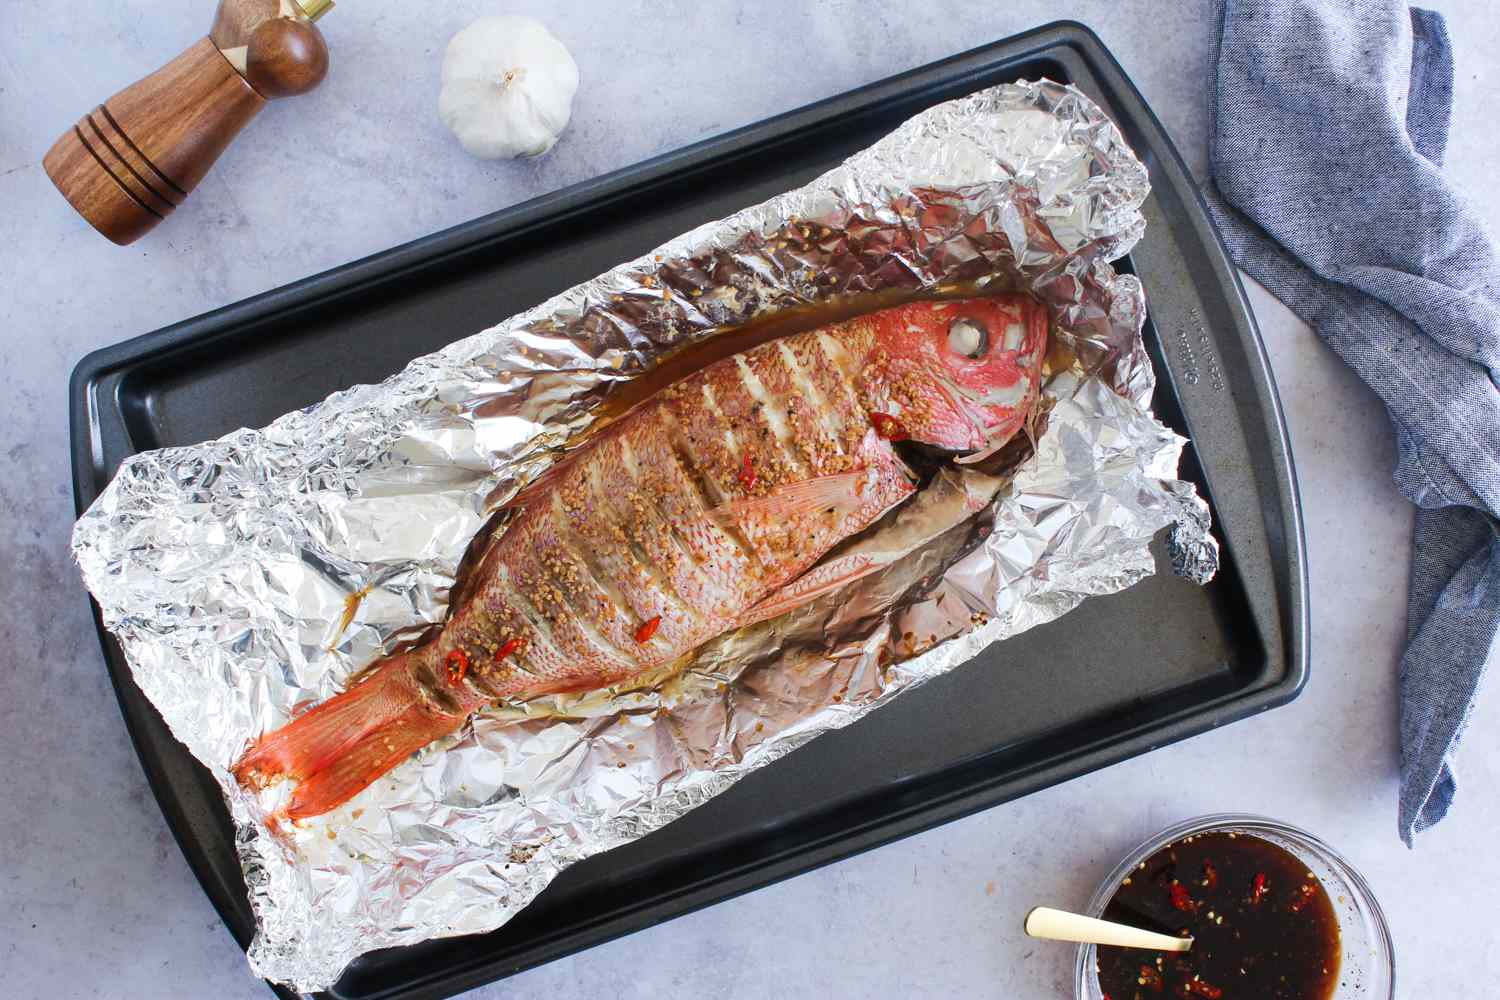 Cooked whole fish on baking sheet